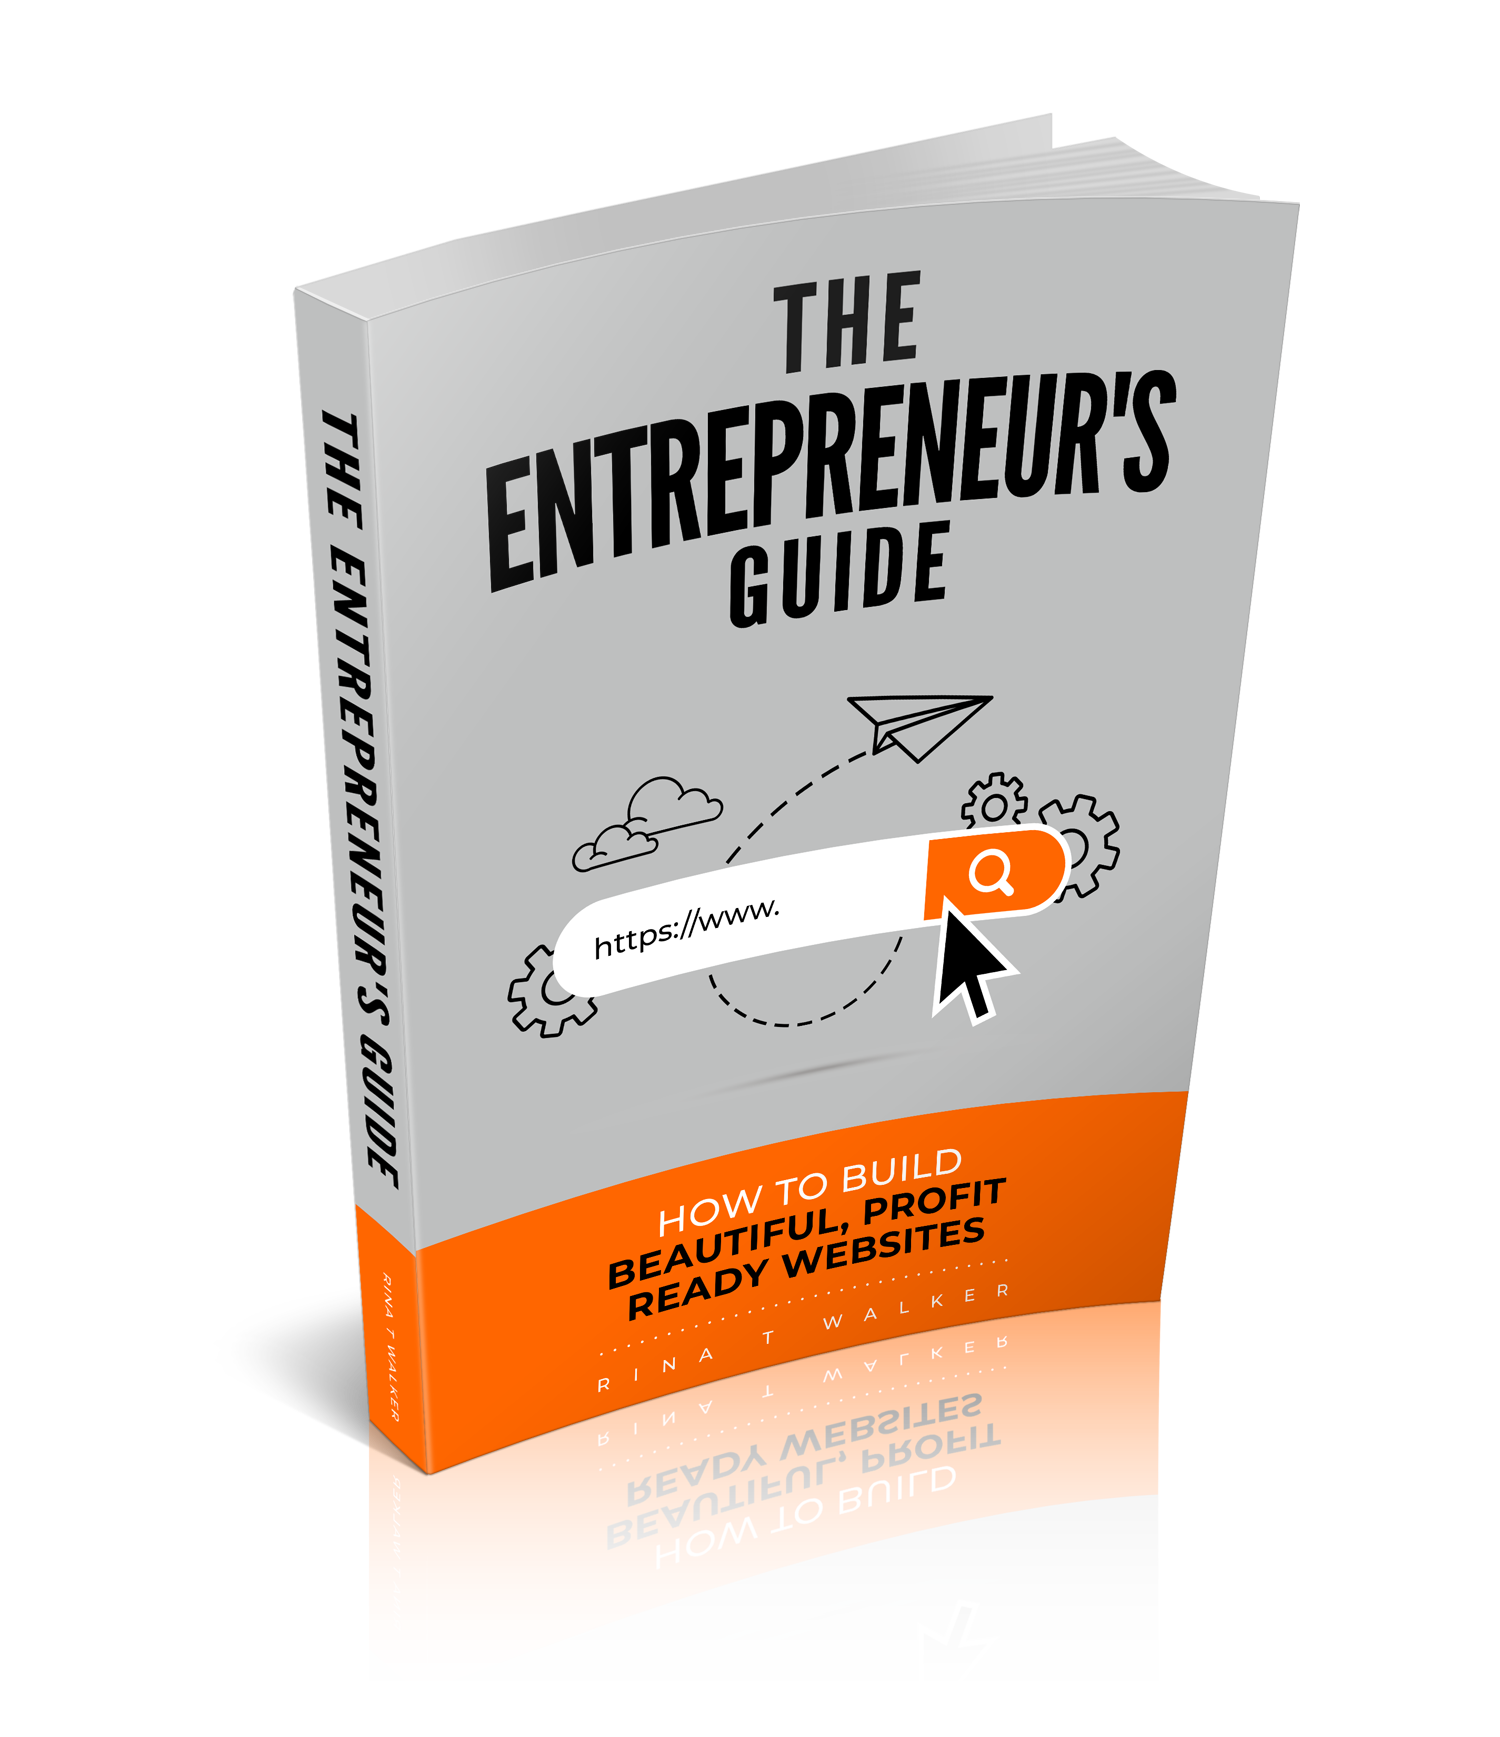 A Free GUIDE - How To Start An Online Business - book